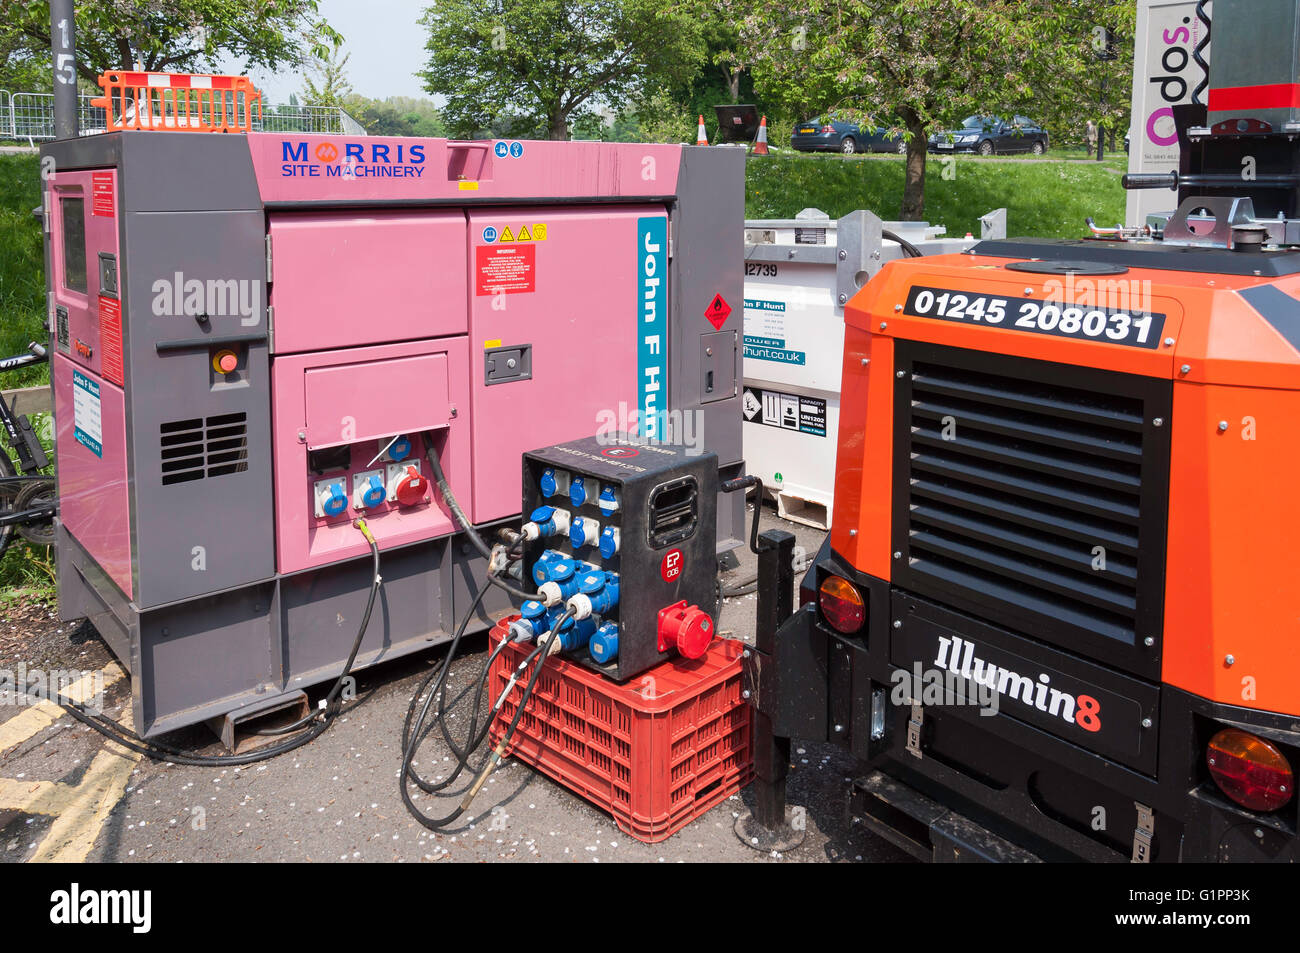 Morris site generator at Royal Windsor Horse Show, Home Park, Windsor, Berkshire, England, United Kingdom - Stock Image